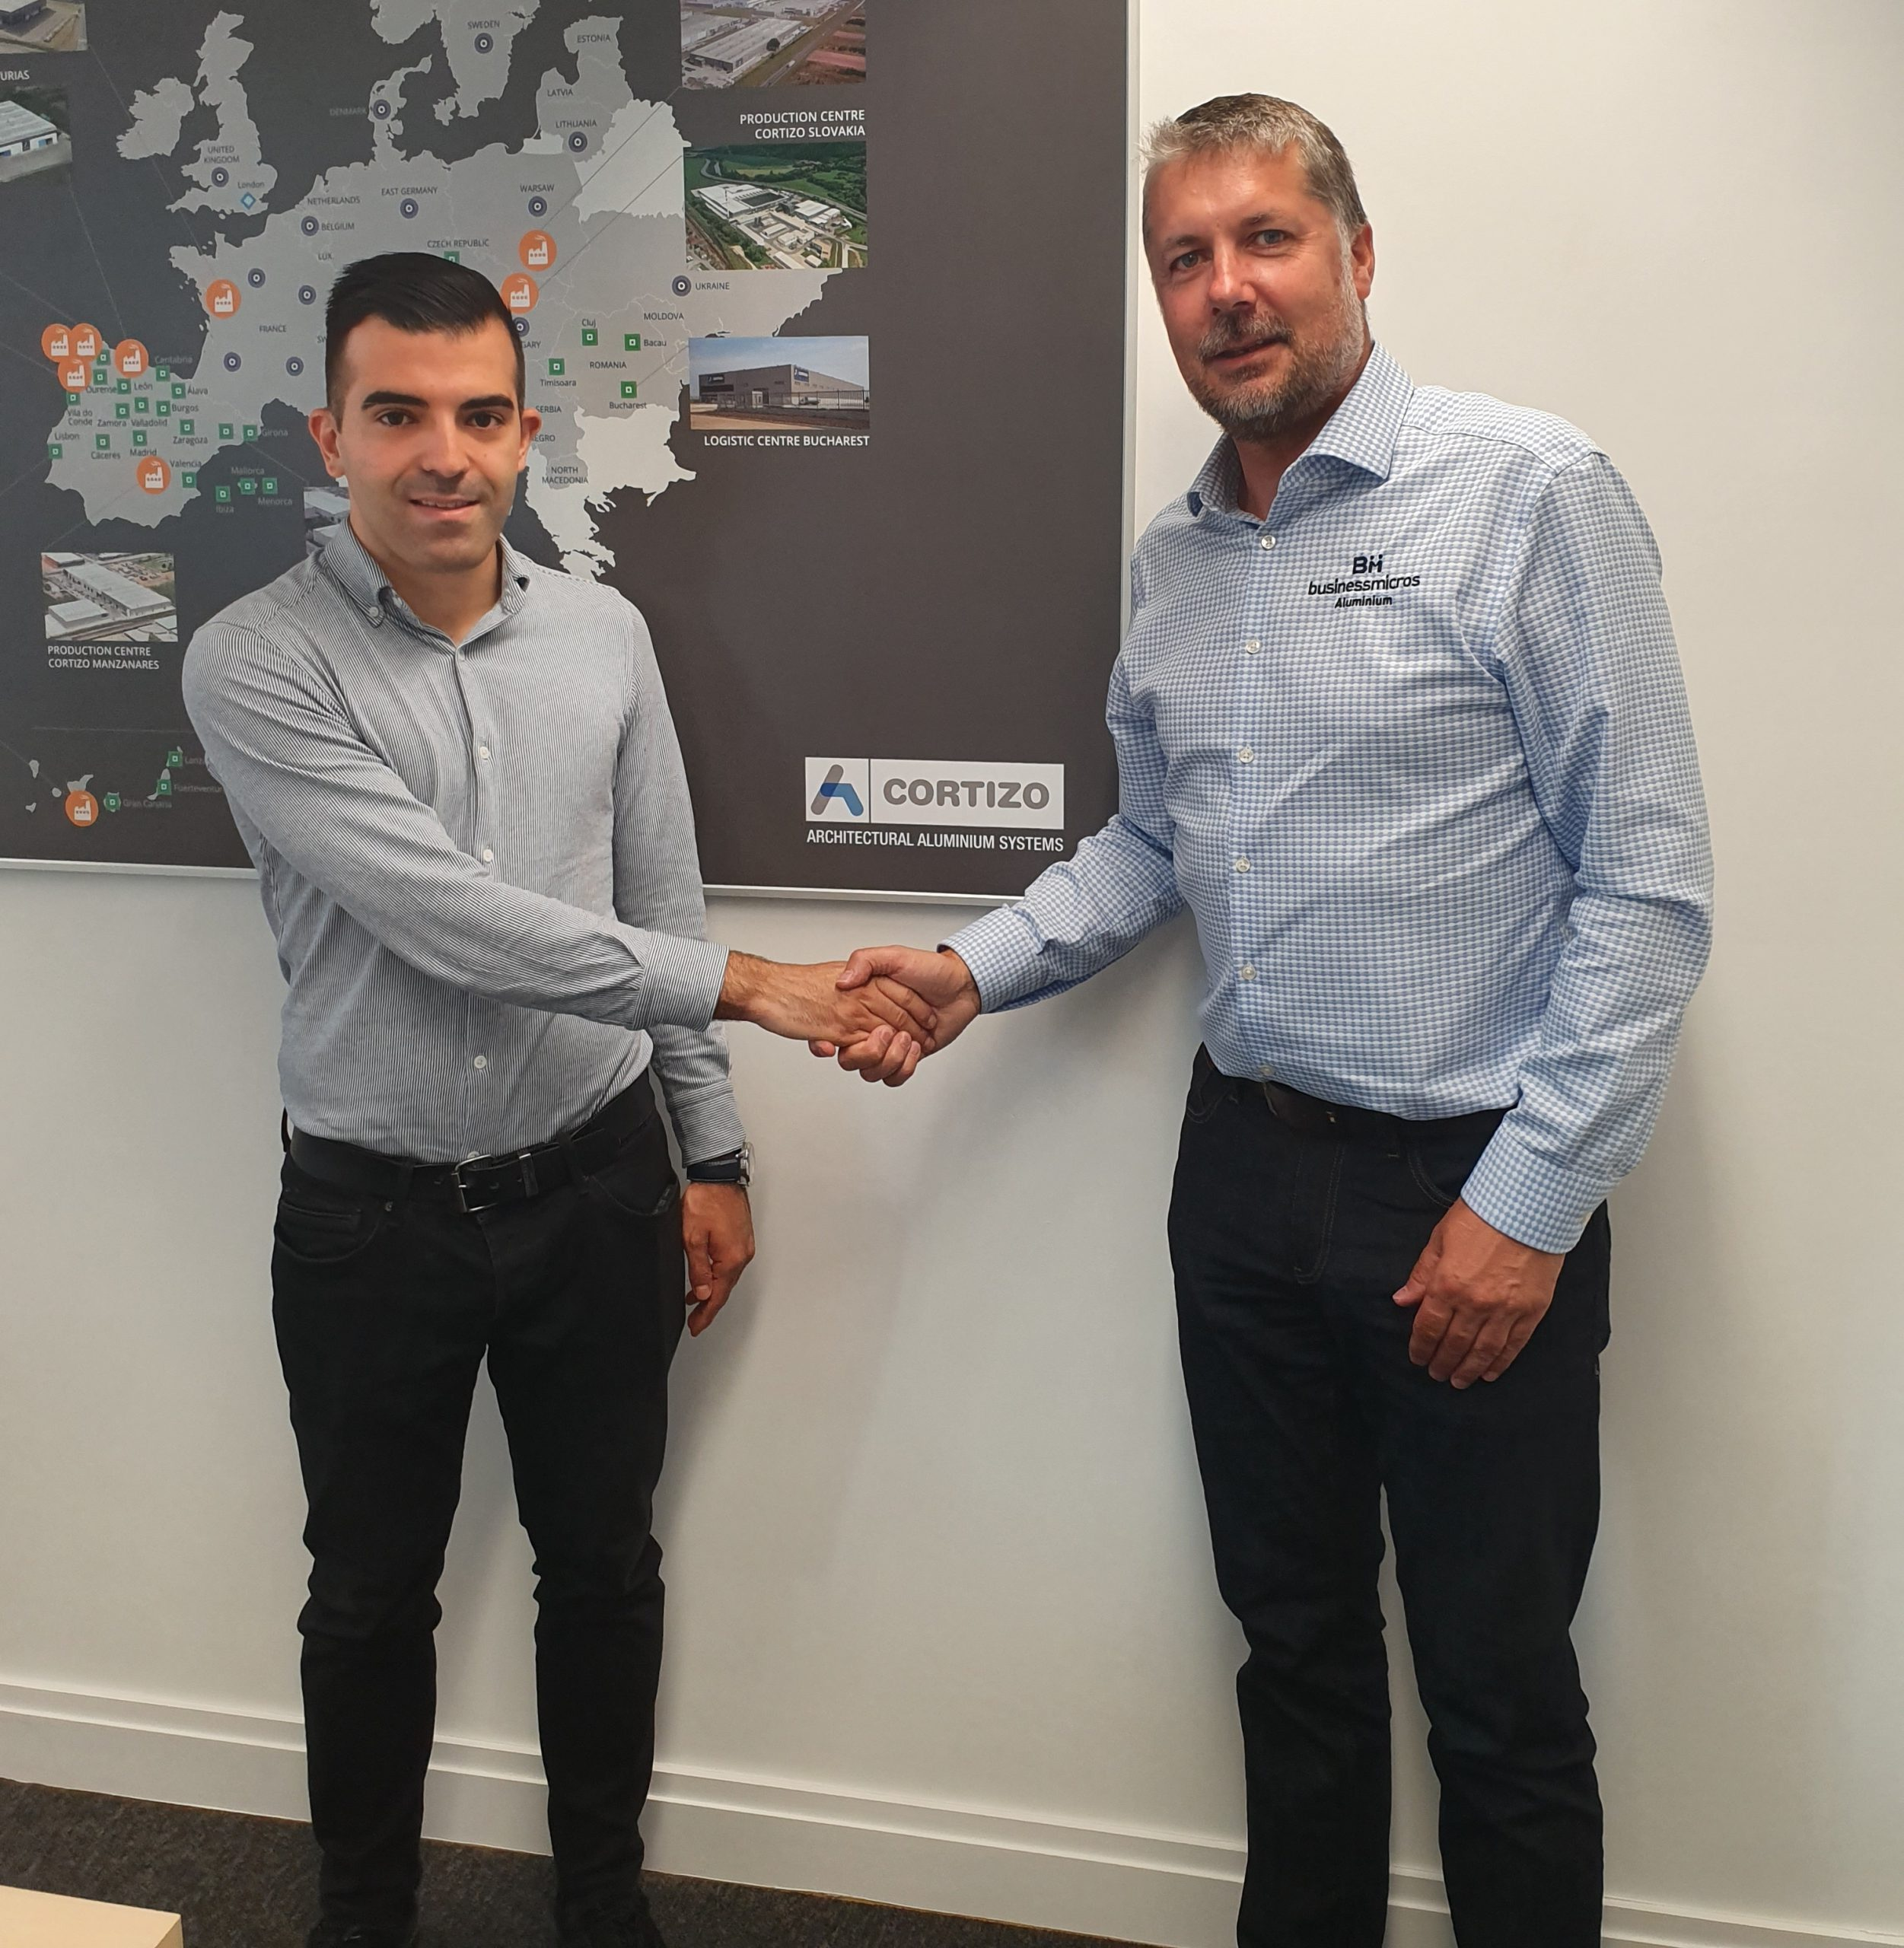 LogiKal - BMA291 Brais Lorenzo Villar from Cortizo left pictured with Dean Hodges from BM Aluminium e1564994886758 scaled